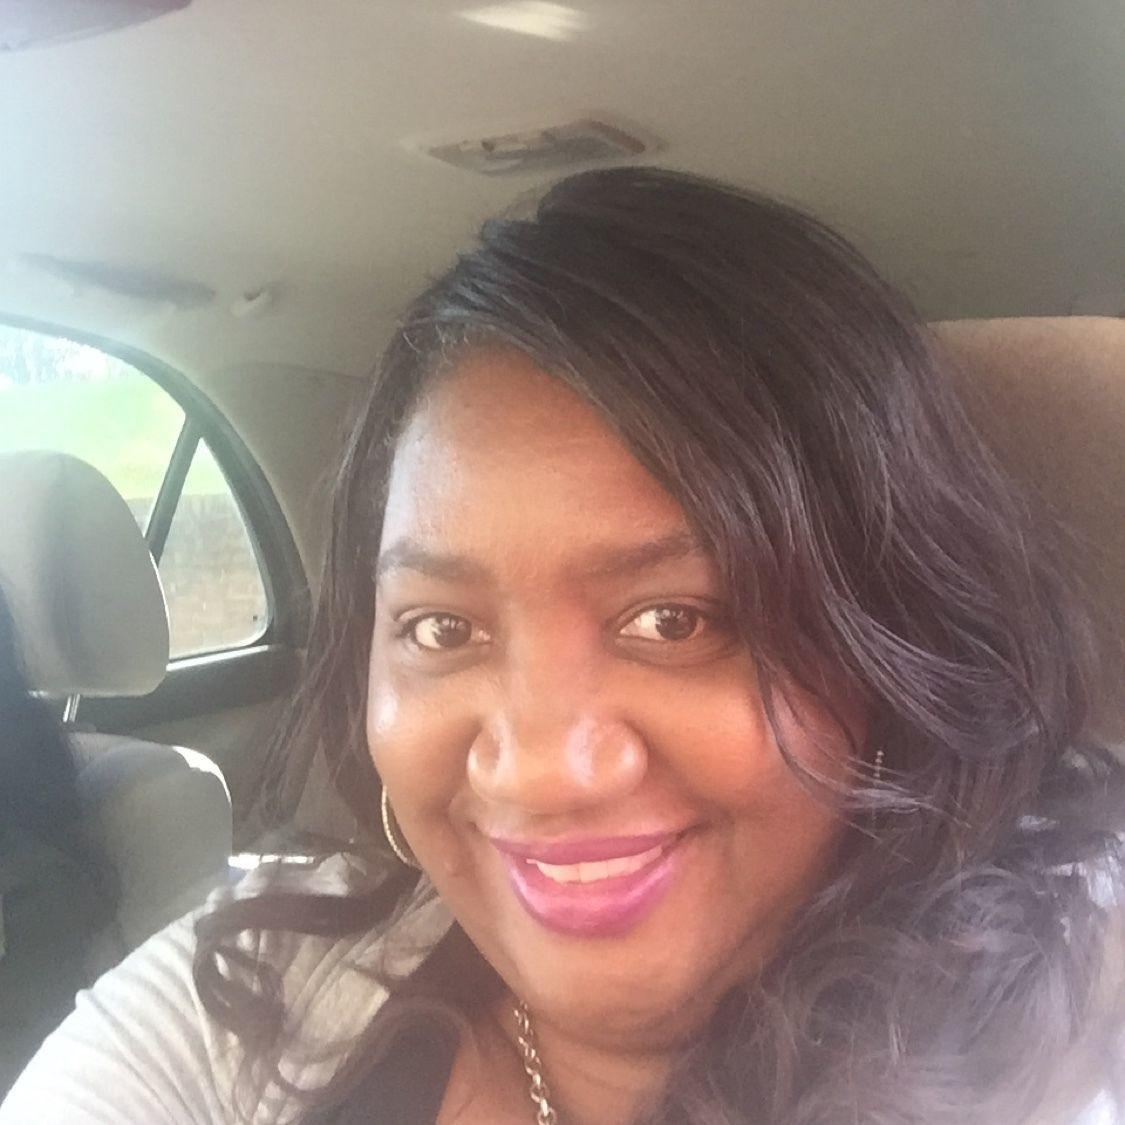 christian singles in bowie Looking to meet the right christian singles in bowie see your matches for free on eharmony - #1 trusted bowie, md online dating site.